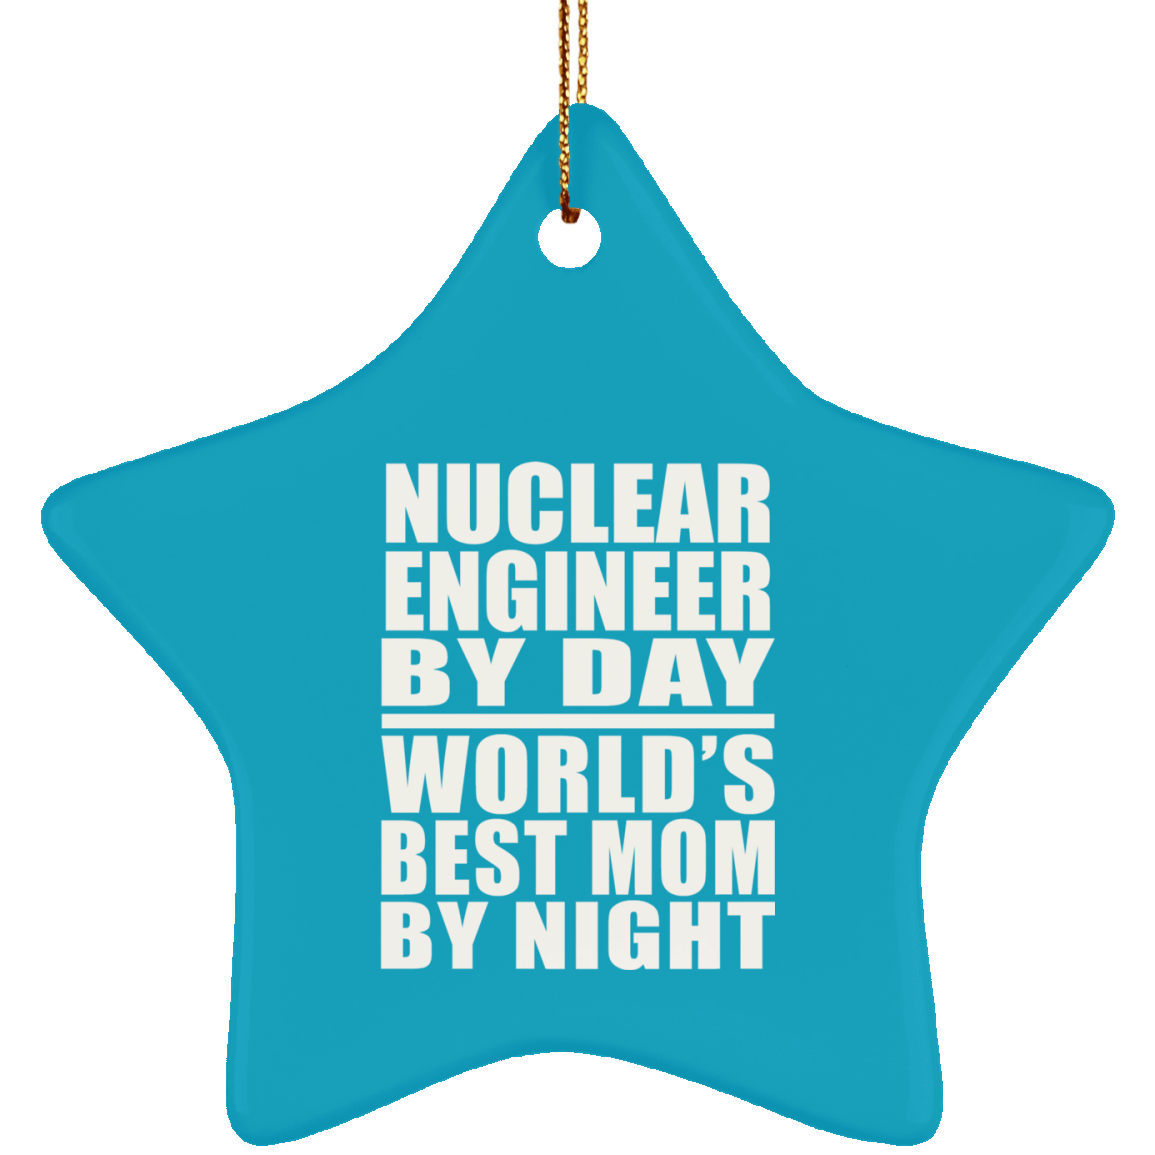 Nuclear Engineer By Day World's Best Mom By Night - Star Ornament